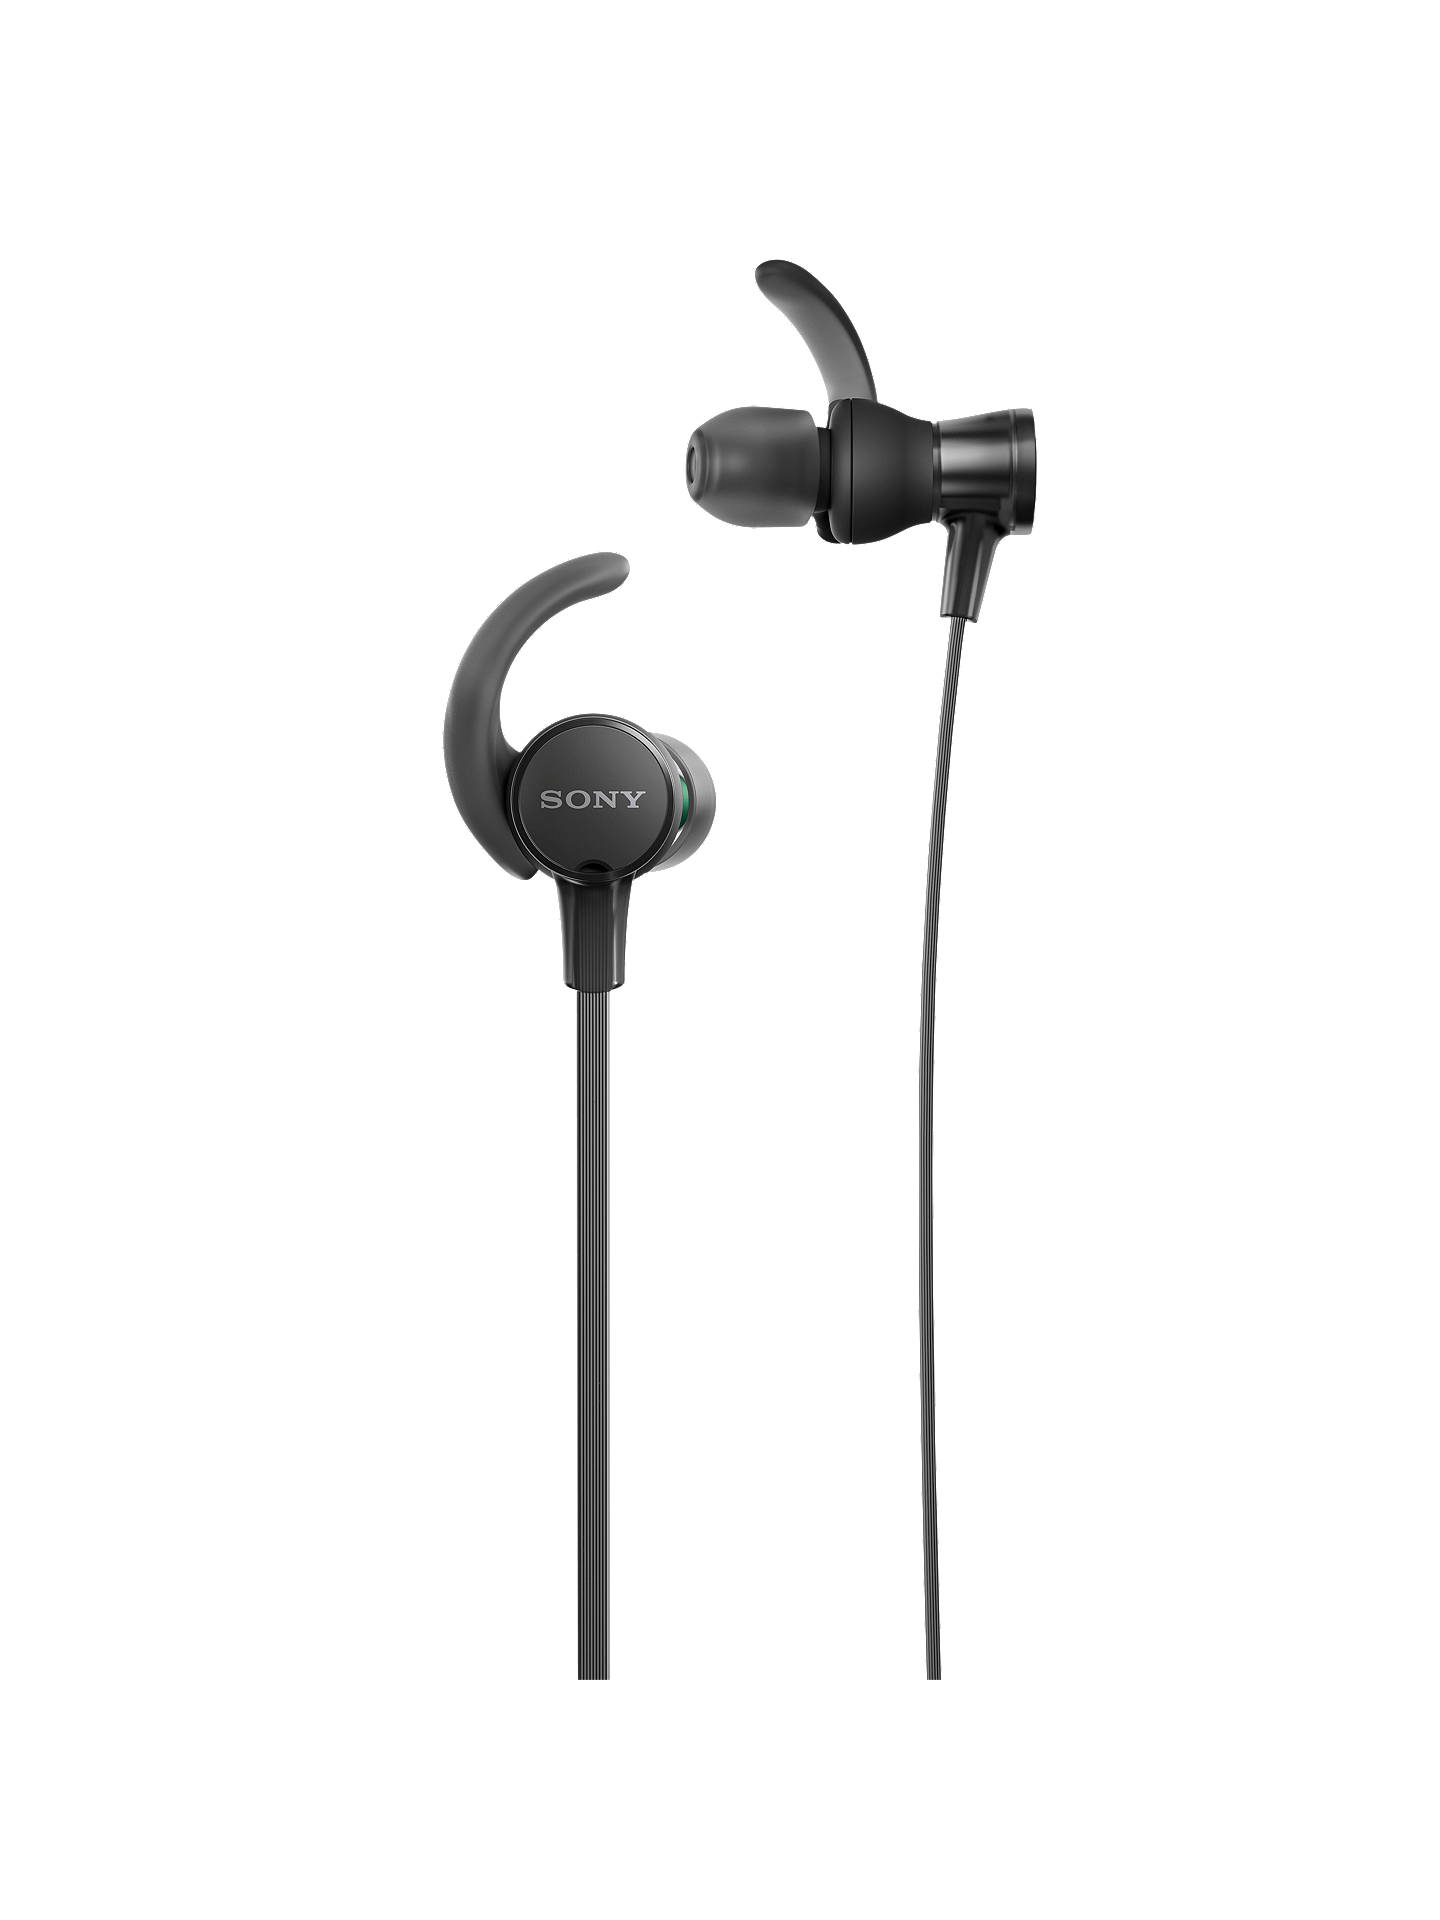 Buy Sony MDR-XB510AS Extra Bass Splash Resistant Sports In-Ear Headphones with Mic/Remote, Black Online at johnlewis.com